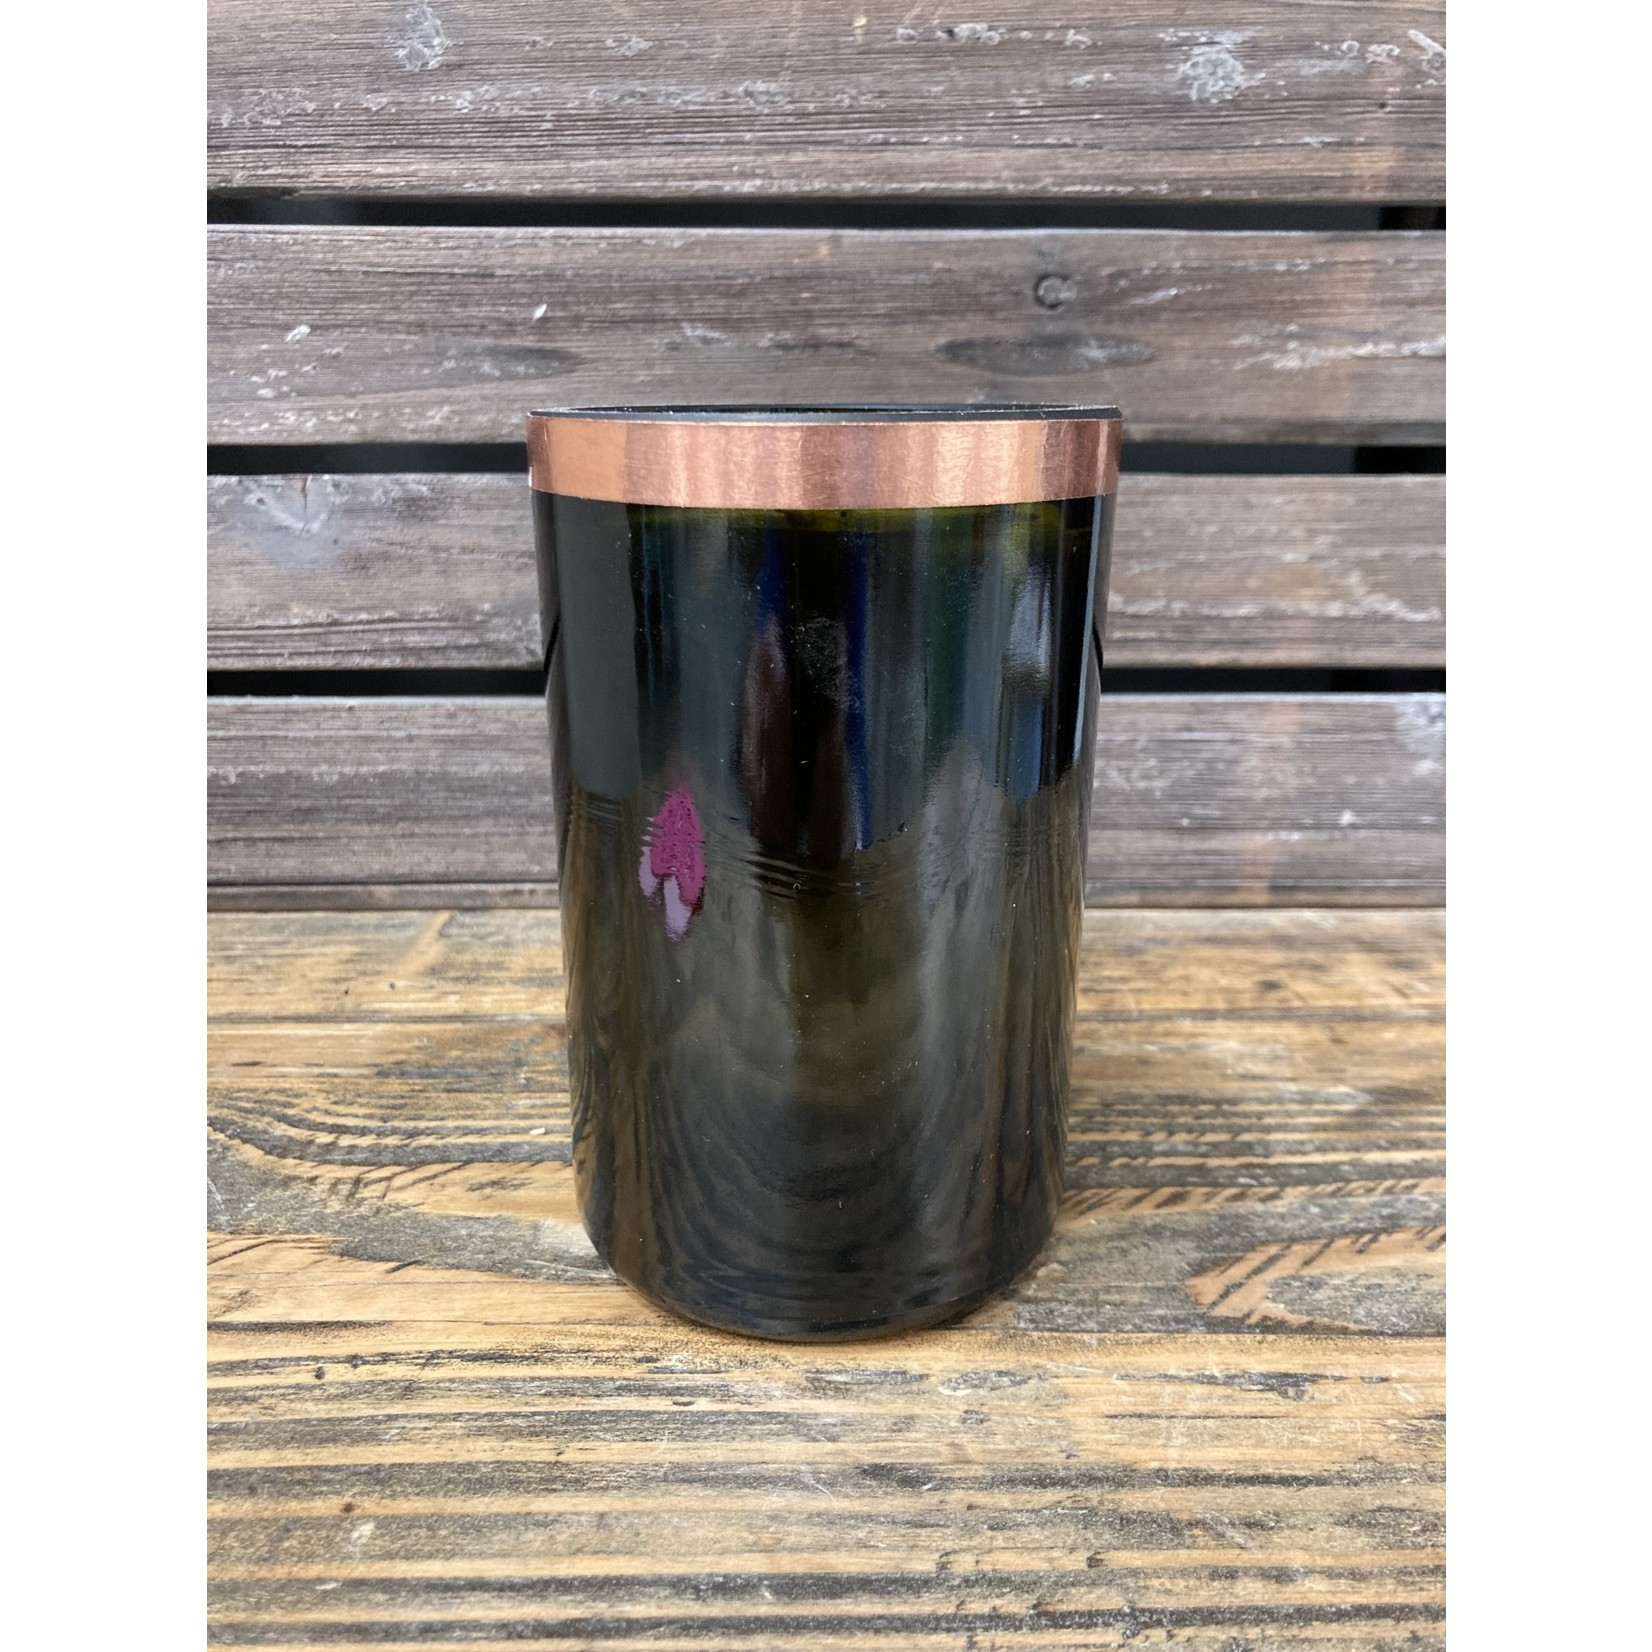 Susan Cowher Candles Uncorked| Amber with Copper Votive and Votive Holder